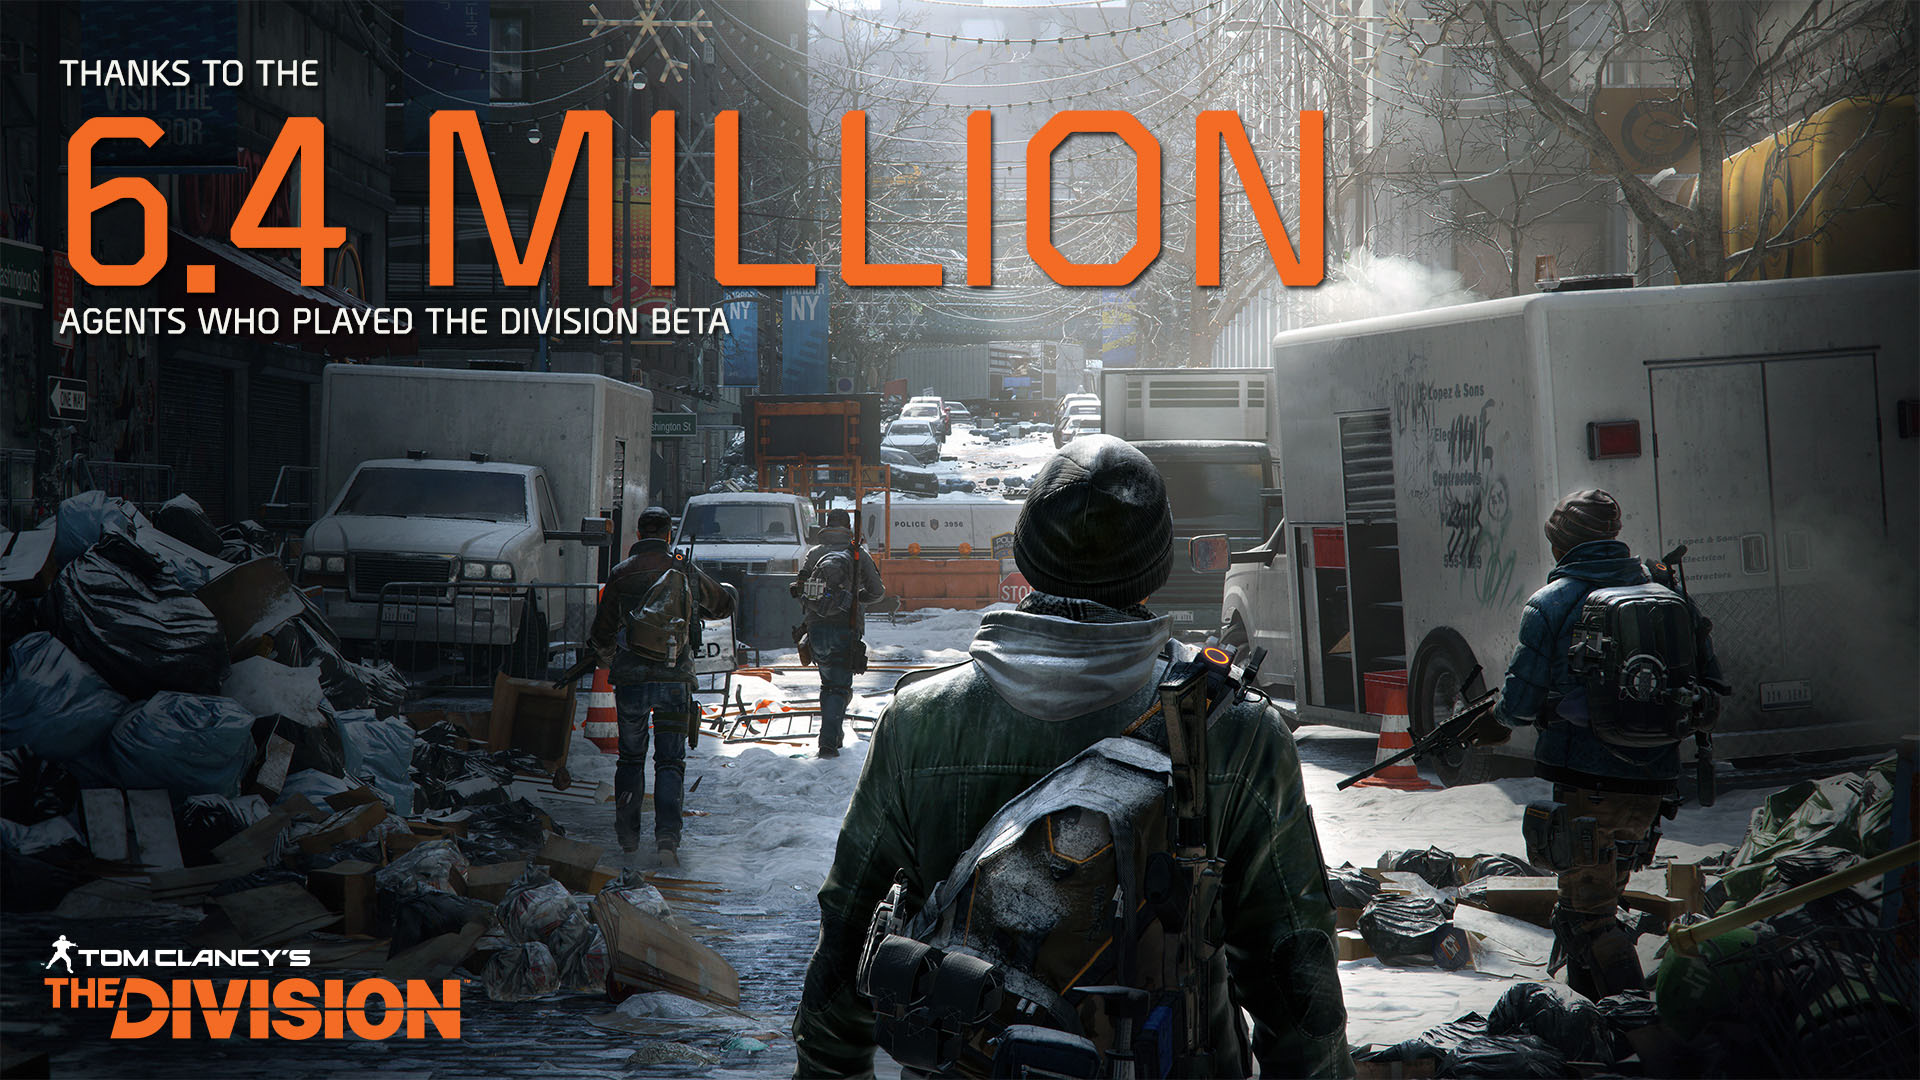 Worksheets Division 6 4 million agents explored new york city during the division beta beta